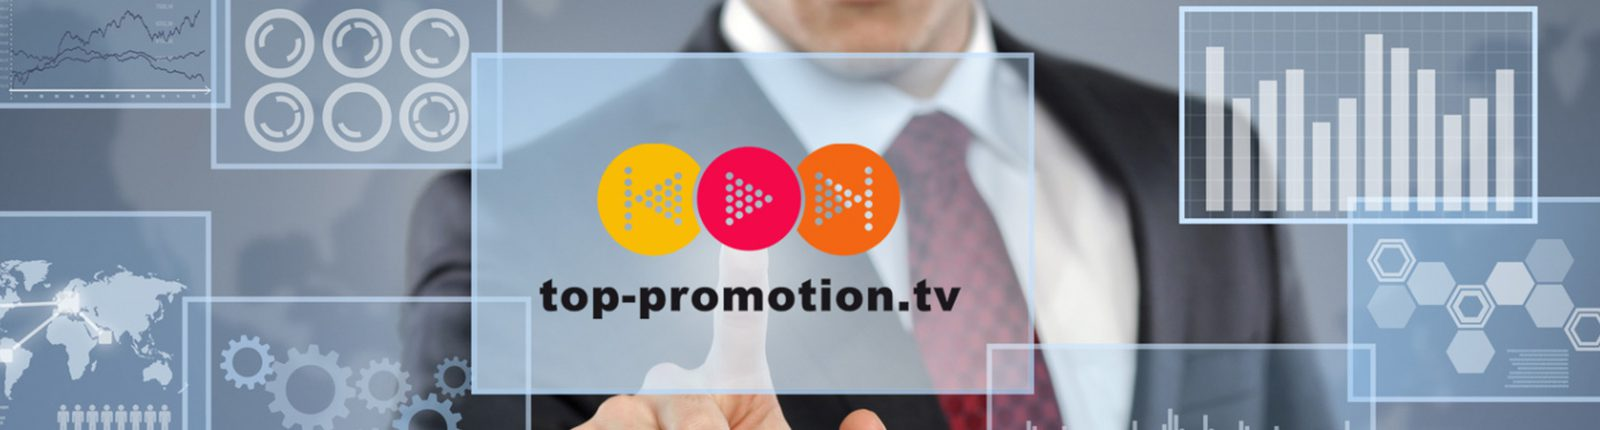 top-promotion-tv